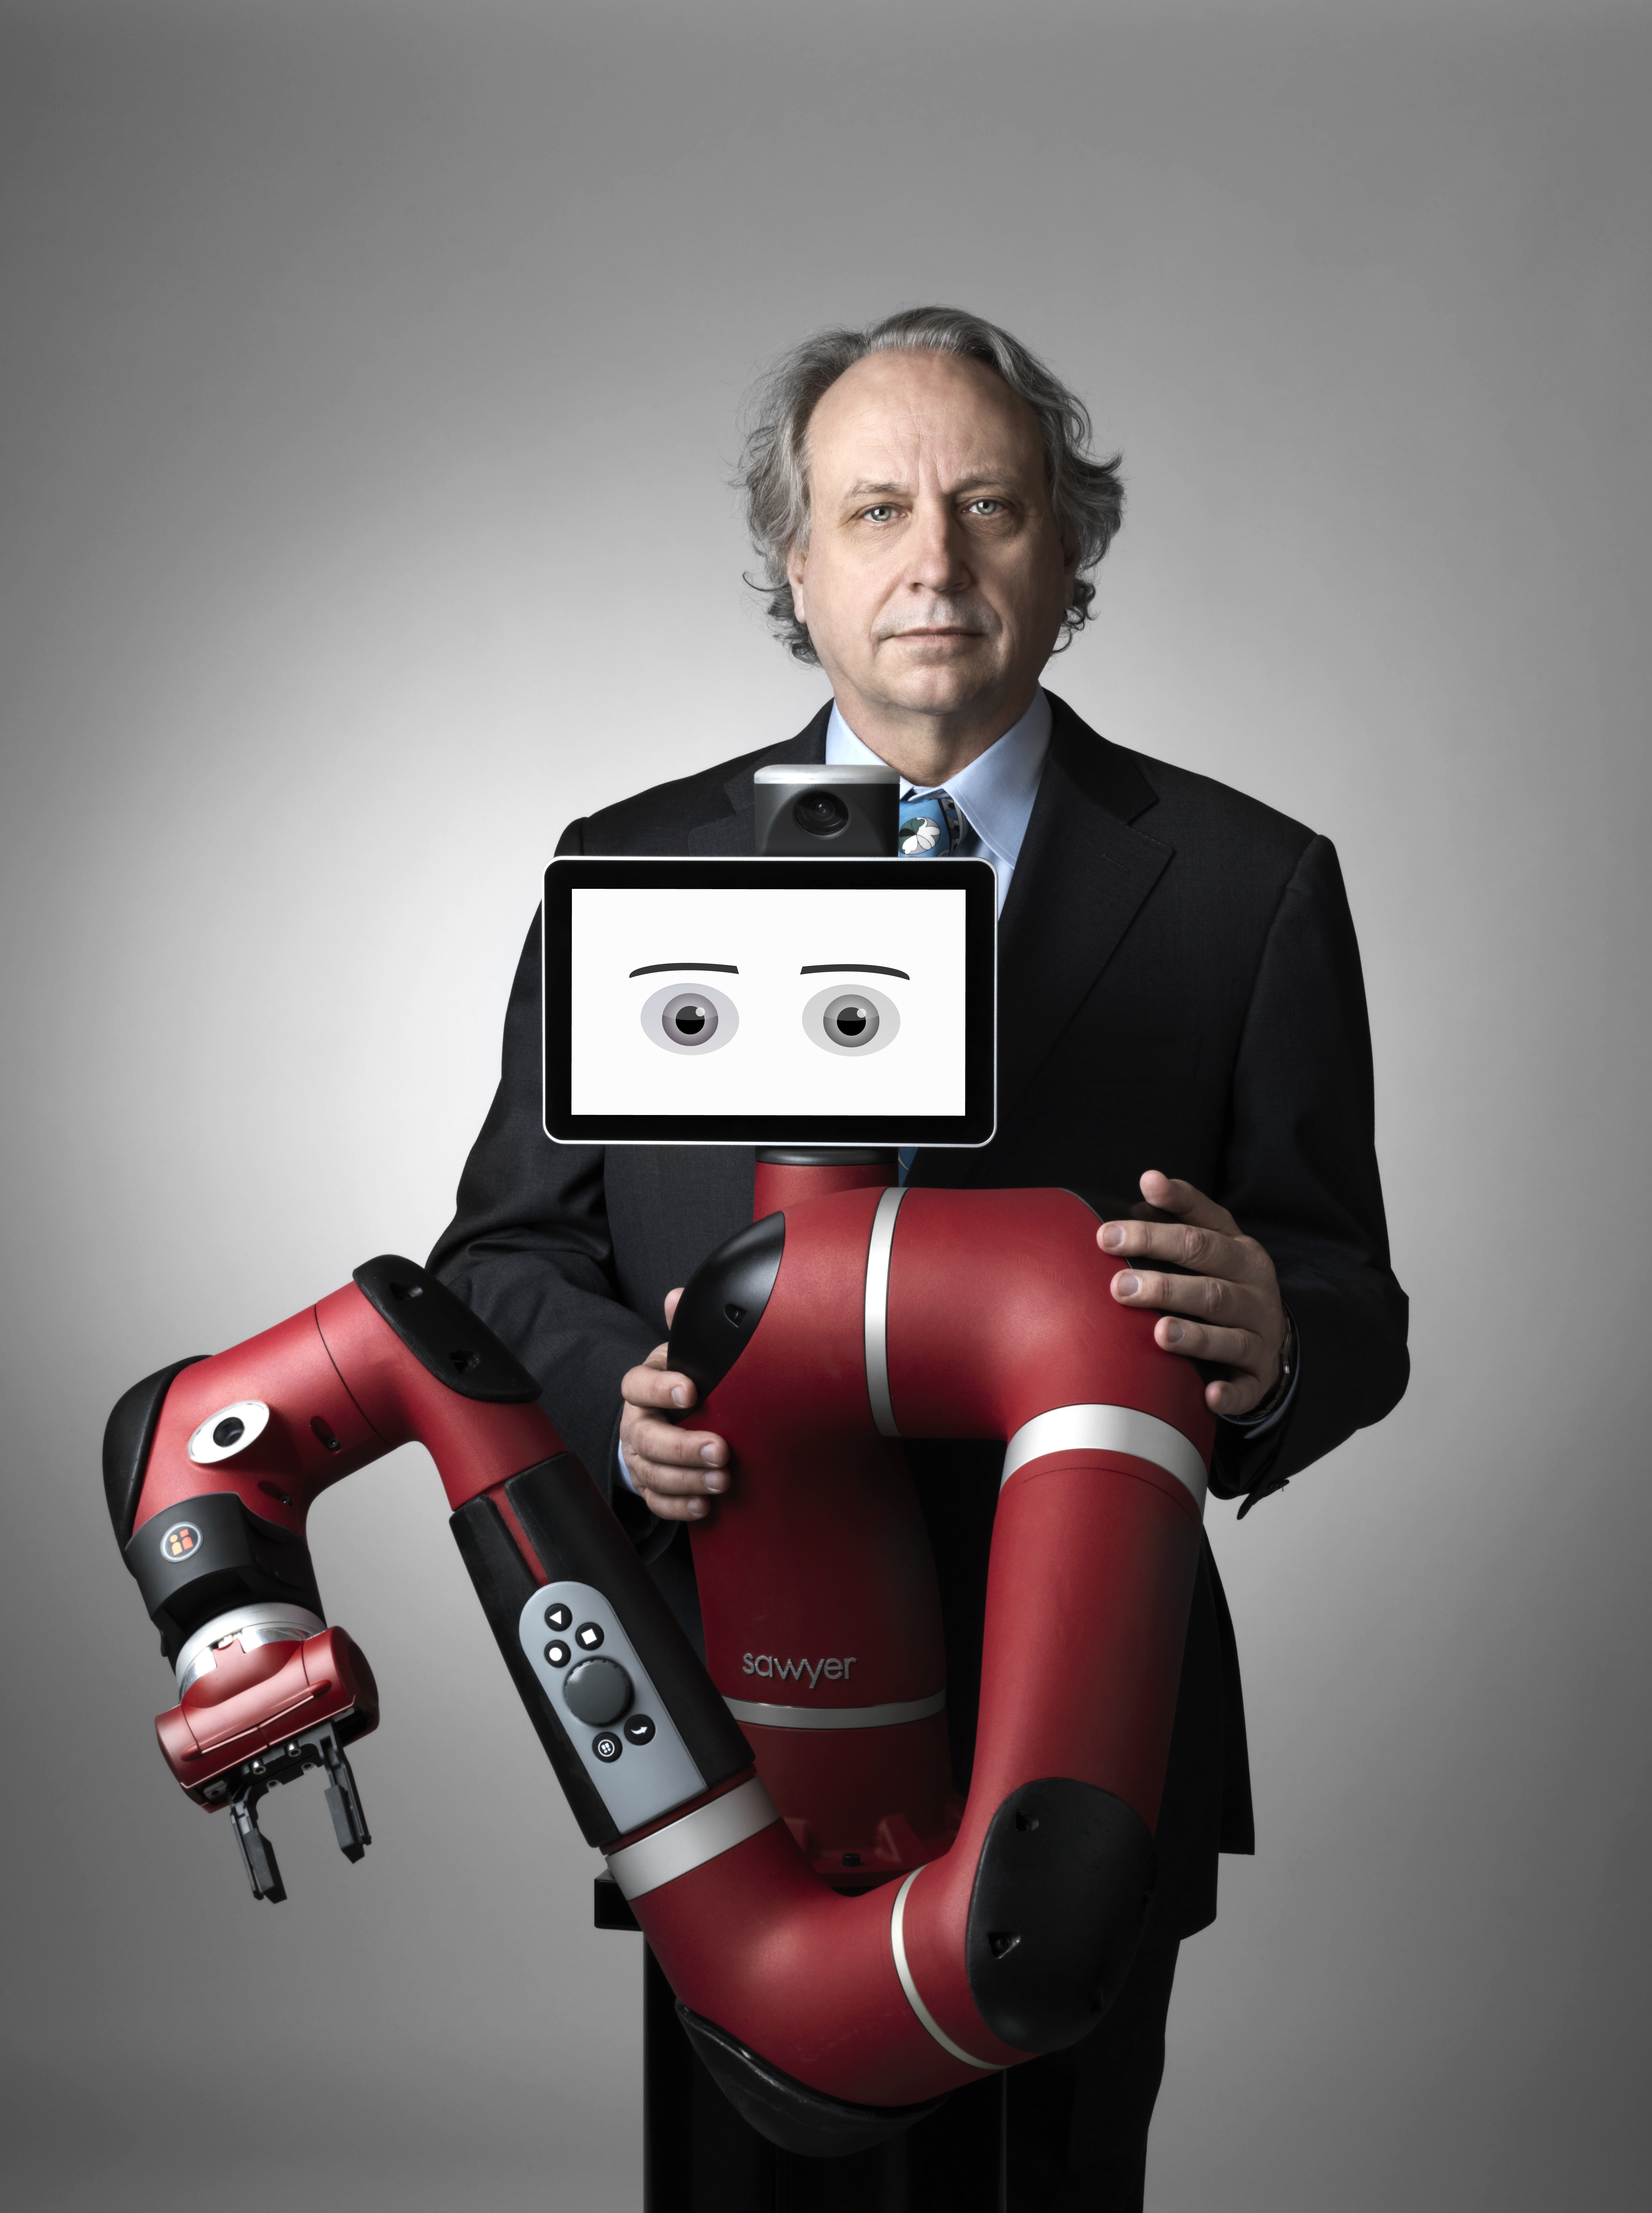 Rethink Robotics co-founder Rodney Brooks poses with Sawyer, the company's newest smart, collaborative robot.